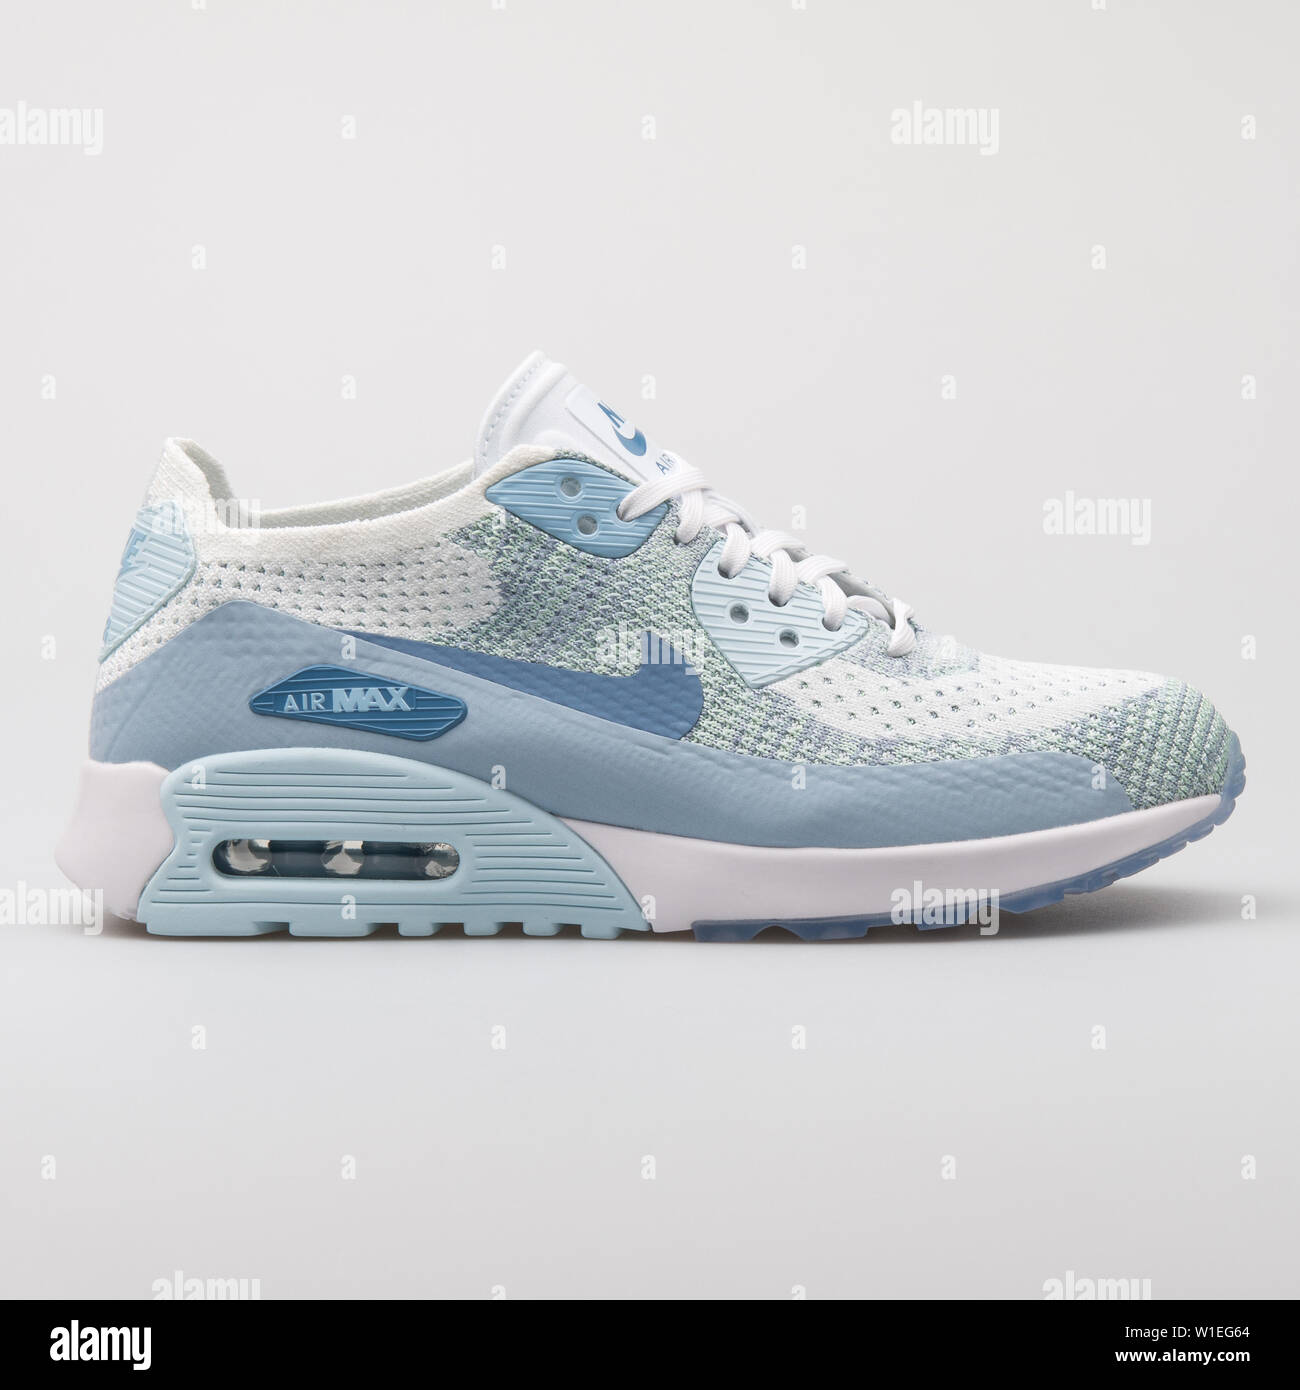 Nike AIR MAX 90 Ultra 2.0 Flyknit 875943 100 .com